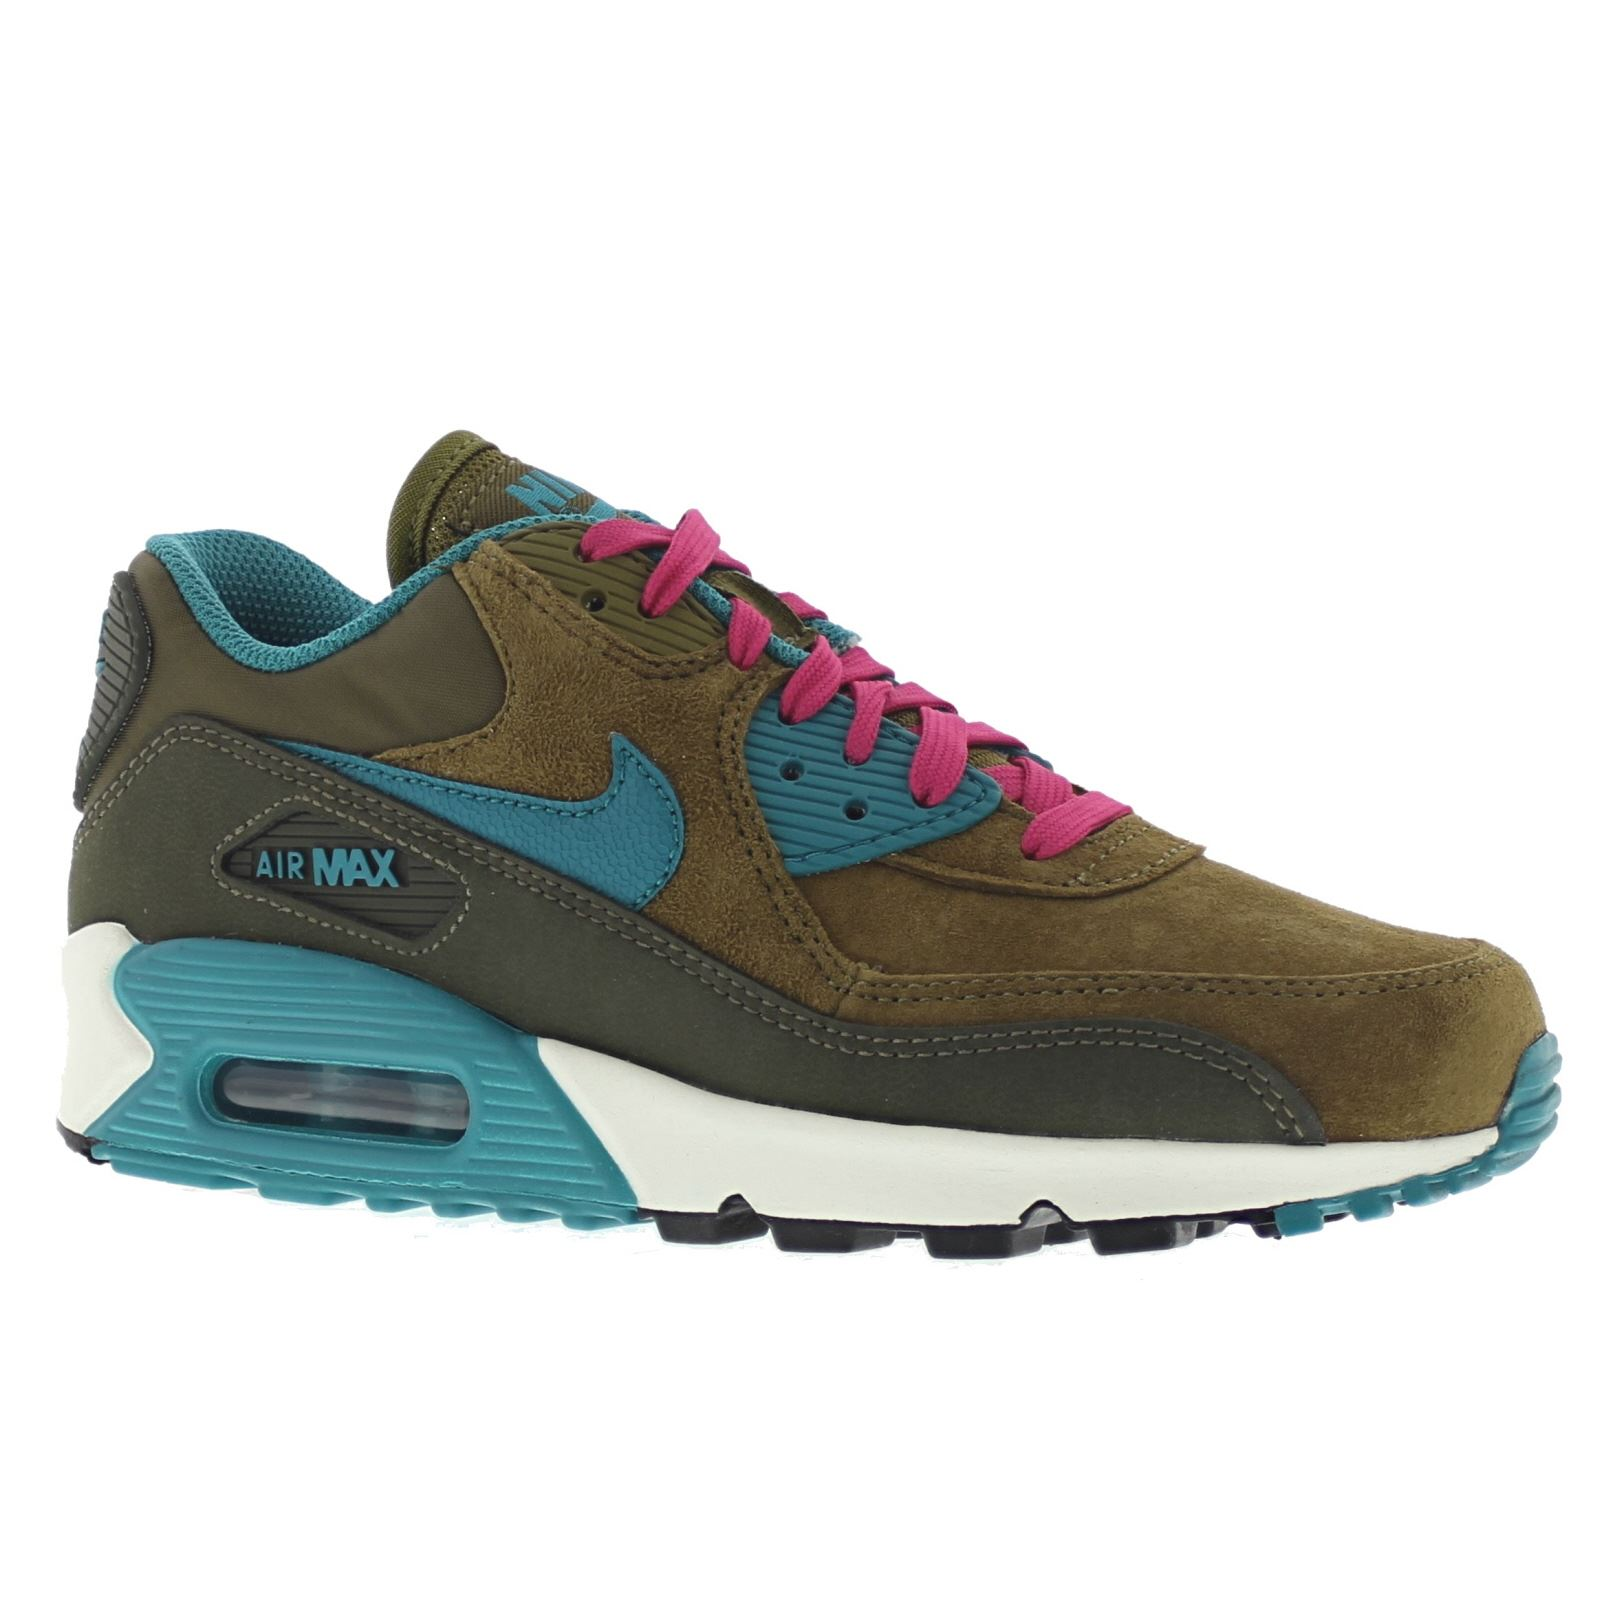 nike air max 90 leather olive womens trainers 768887 300. Black Bedroom Furniture Sets. Home Design Ideas